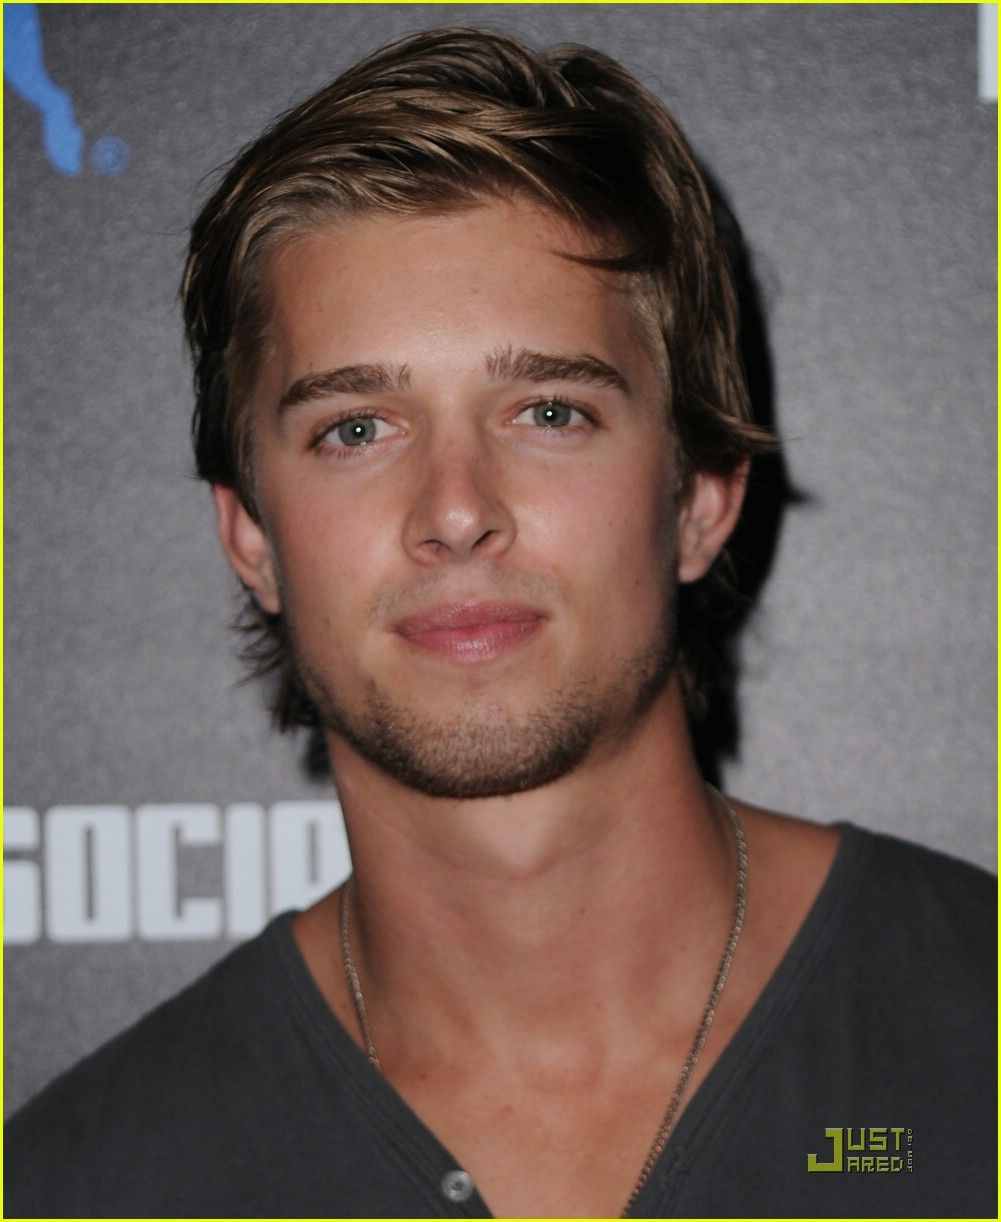 drew van acker filmsdrew van acker instagram, drew van acker gif, drew van acker 2016, drew van acker 2017, drew van acker hot scene, drew van acker gif tumblr, drew van acker and ashley benson, drew van acker gif hunt, drew van acker age, drew van acker photoshoot, drew van acker википедия, drew van acker wife, drew van acker twitter, drew van acker films, drew van acker healthy celeb, drew van acker filmography, drew van acker modeling